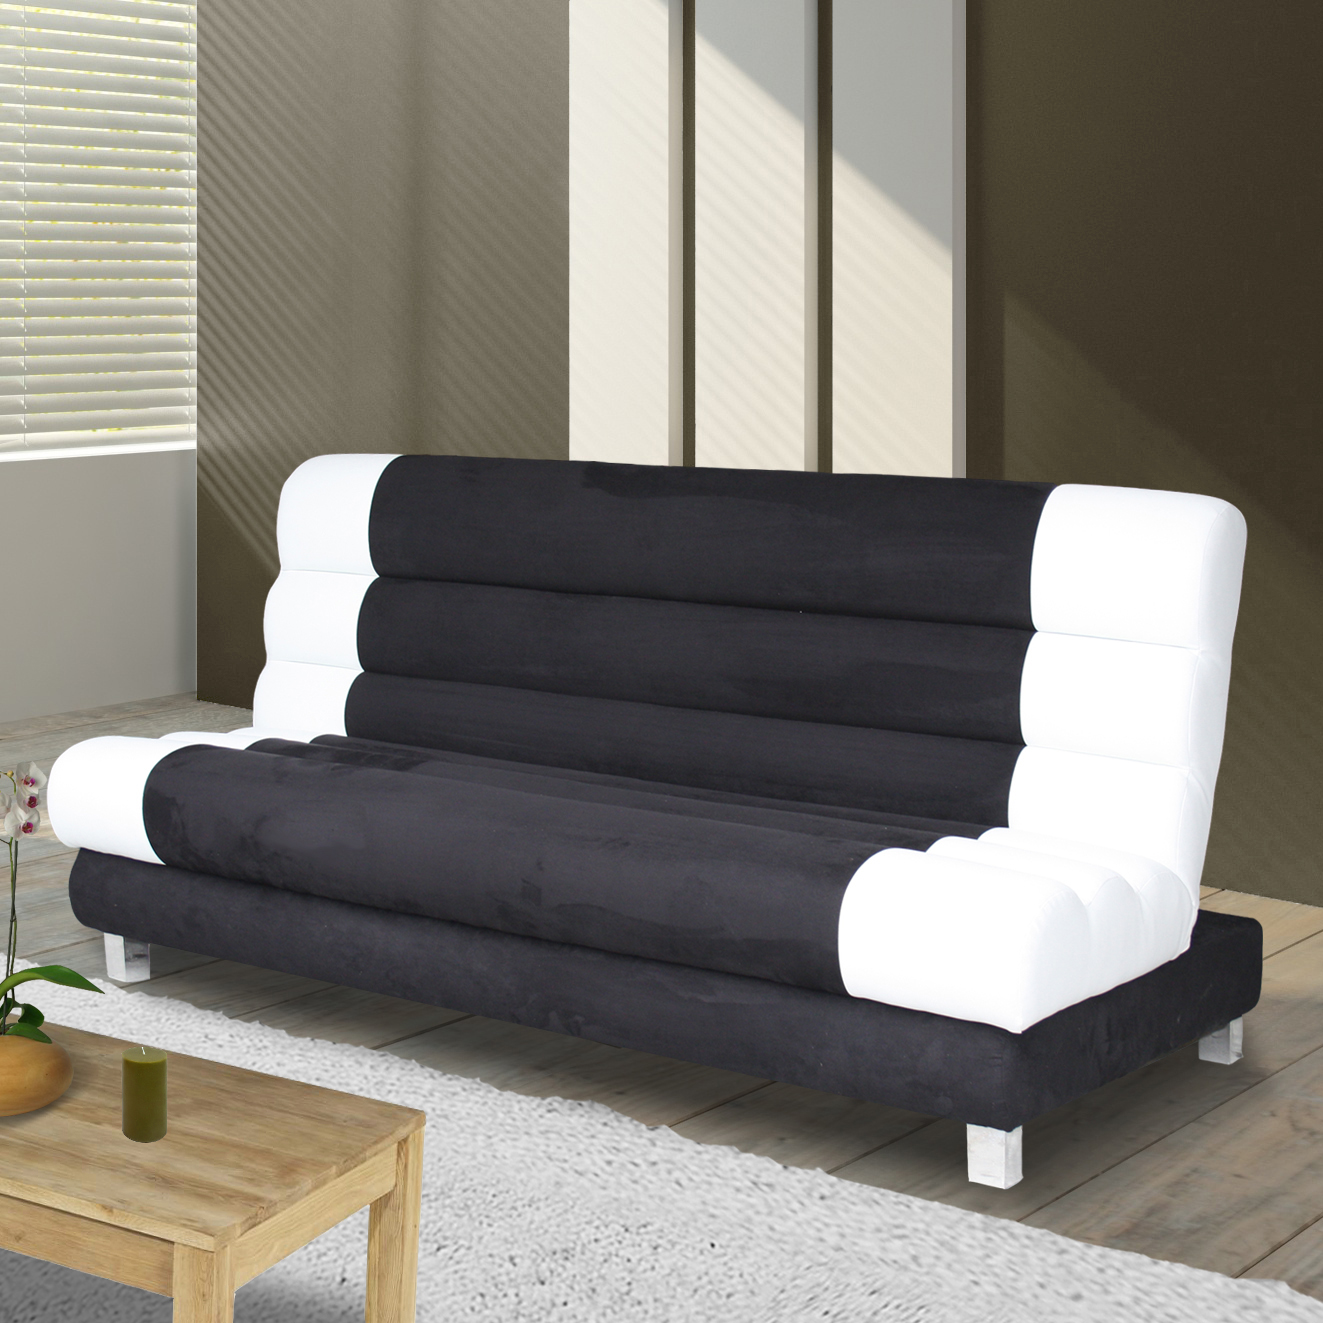 Housse canap clic clac noir royal sofa id e de canap for Housse clic clac fly